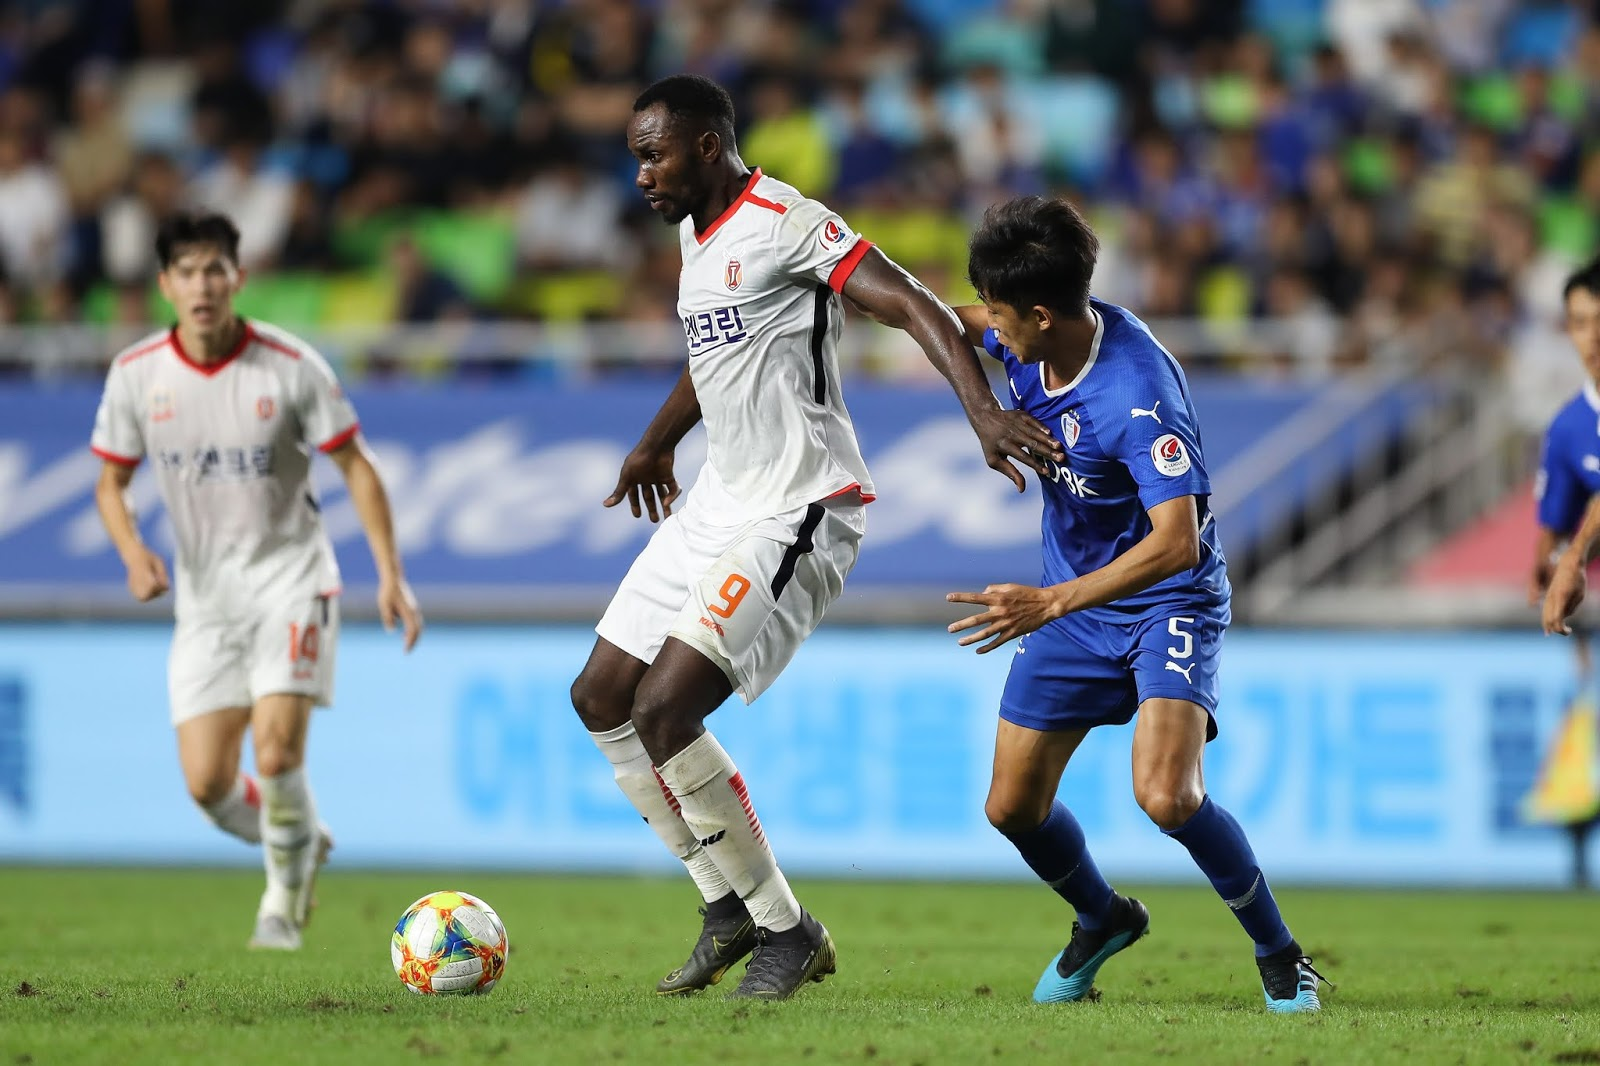 Christian Osaguona in action against Suwon Bluewings 08.30.19 in K League 1.